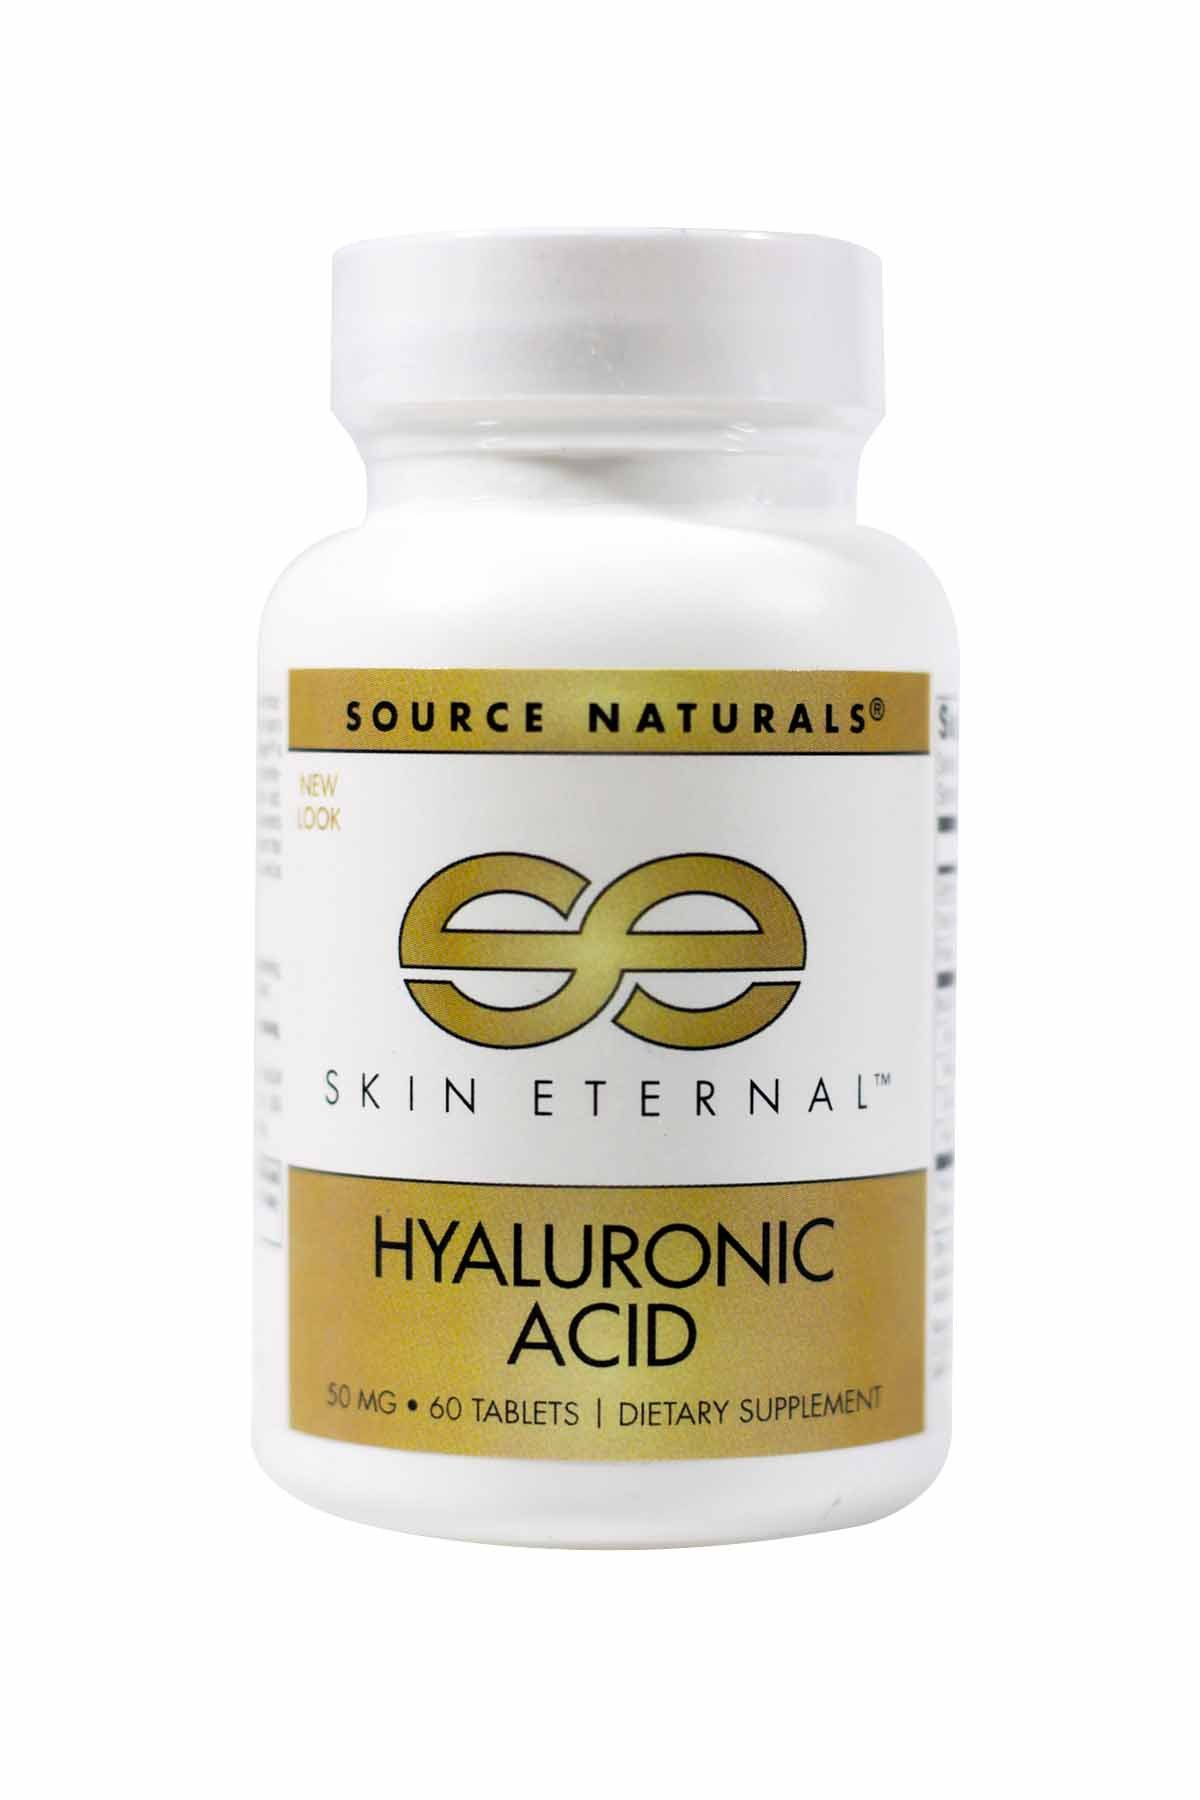 SOURCE NATURALS Skin Eternal Hyaluronic Acid Tablet, 60 Count